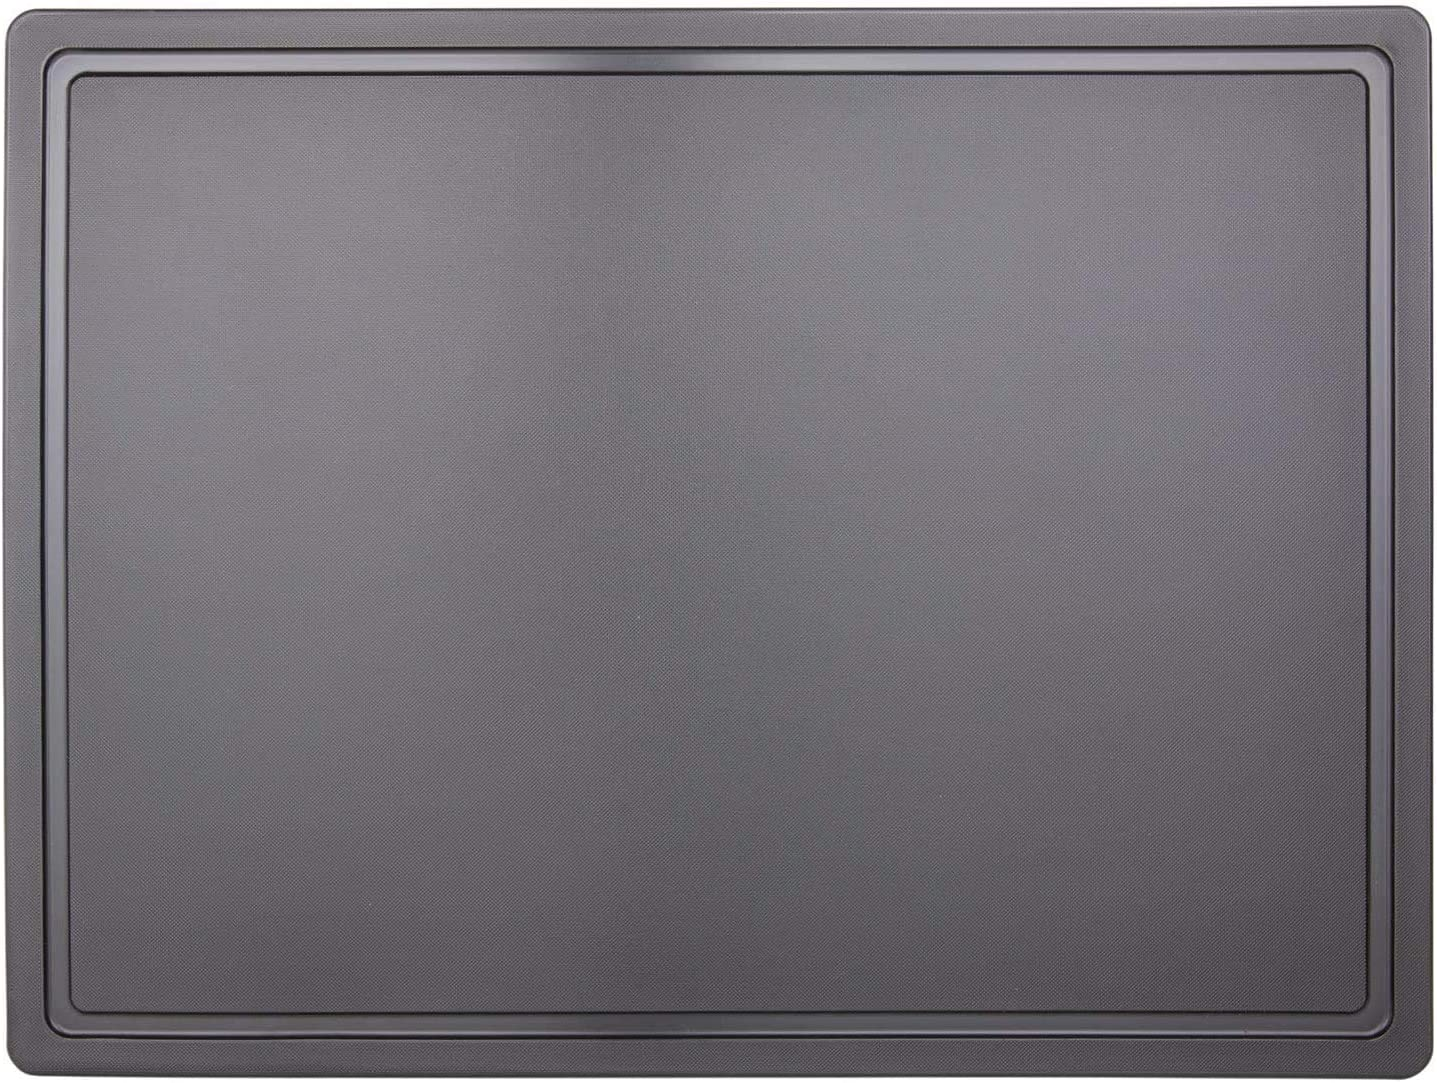 Extra Large 24x18 Black Plastic Carving Board with Groove, NSF Certified, 3/4 Inch Thick HDPE Poly